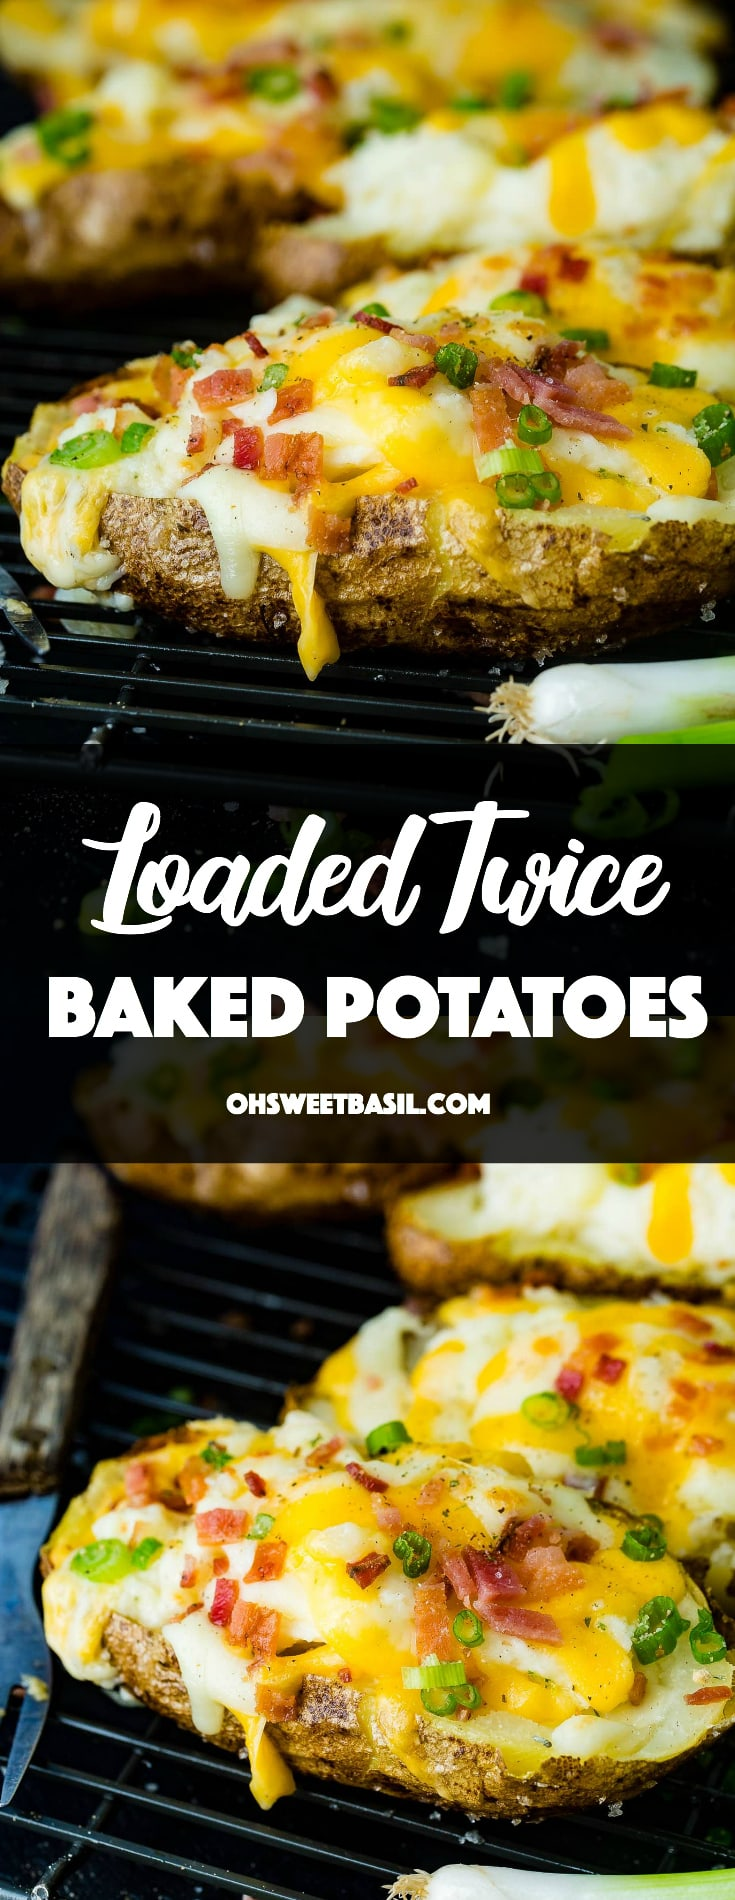 a cooling rack with cheesy topped twice baked potatoes and bacon crumbles